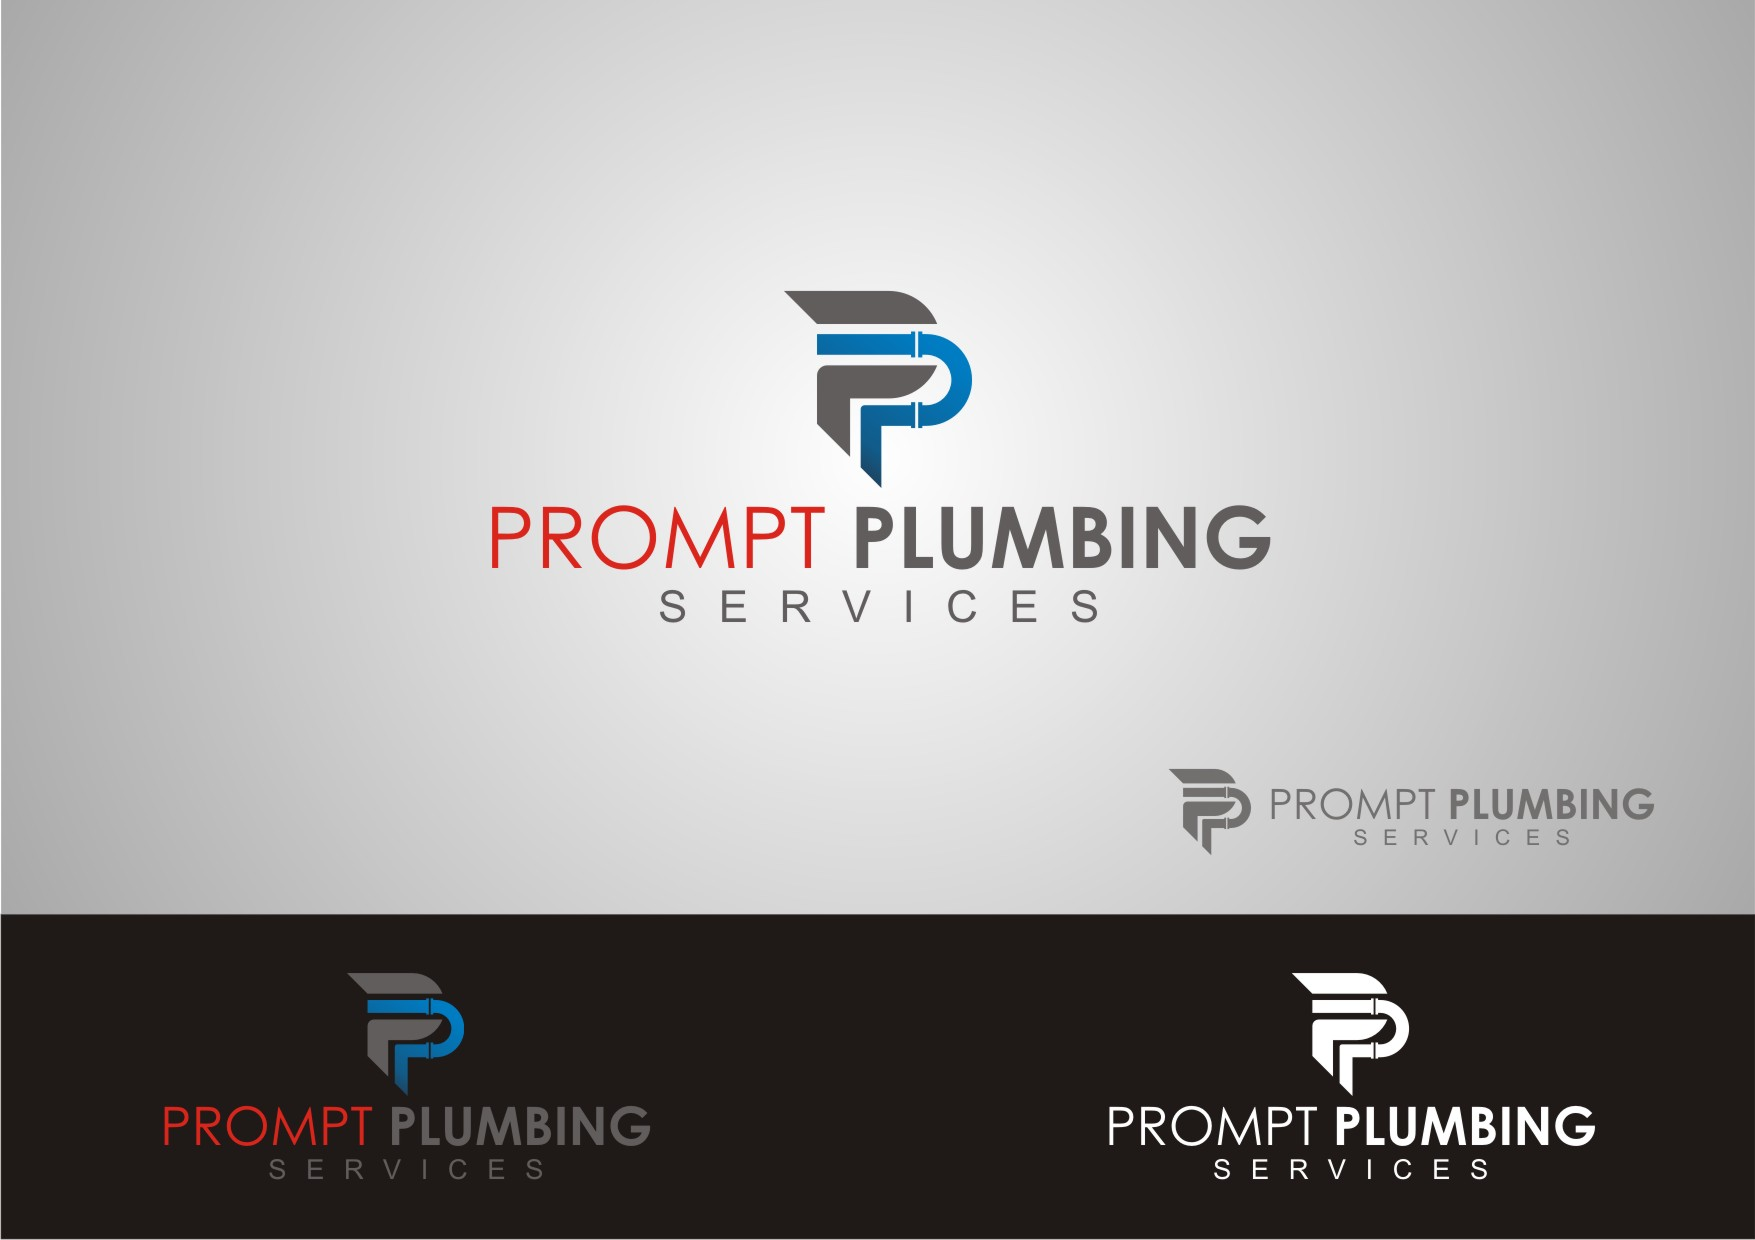 Logo Design by Private User - Entry No. 29 in the Logo Design Contest Artistic Logo Design for Prompt Plumbing Services.